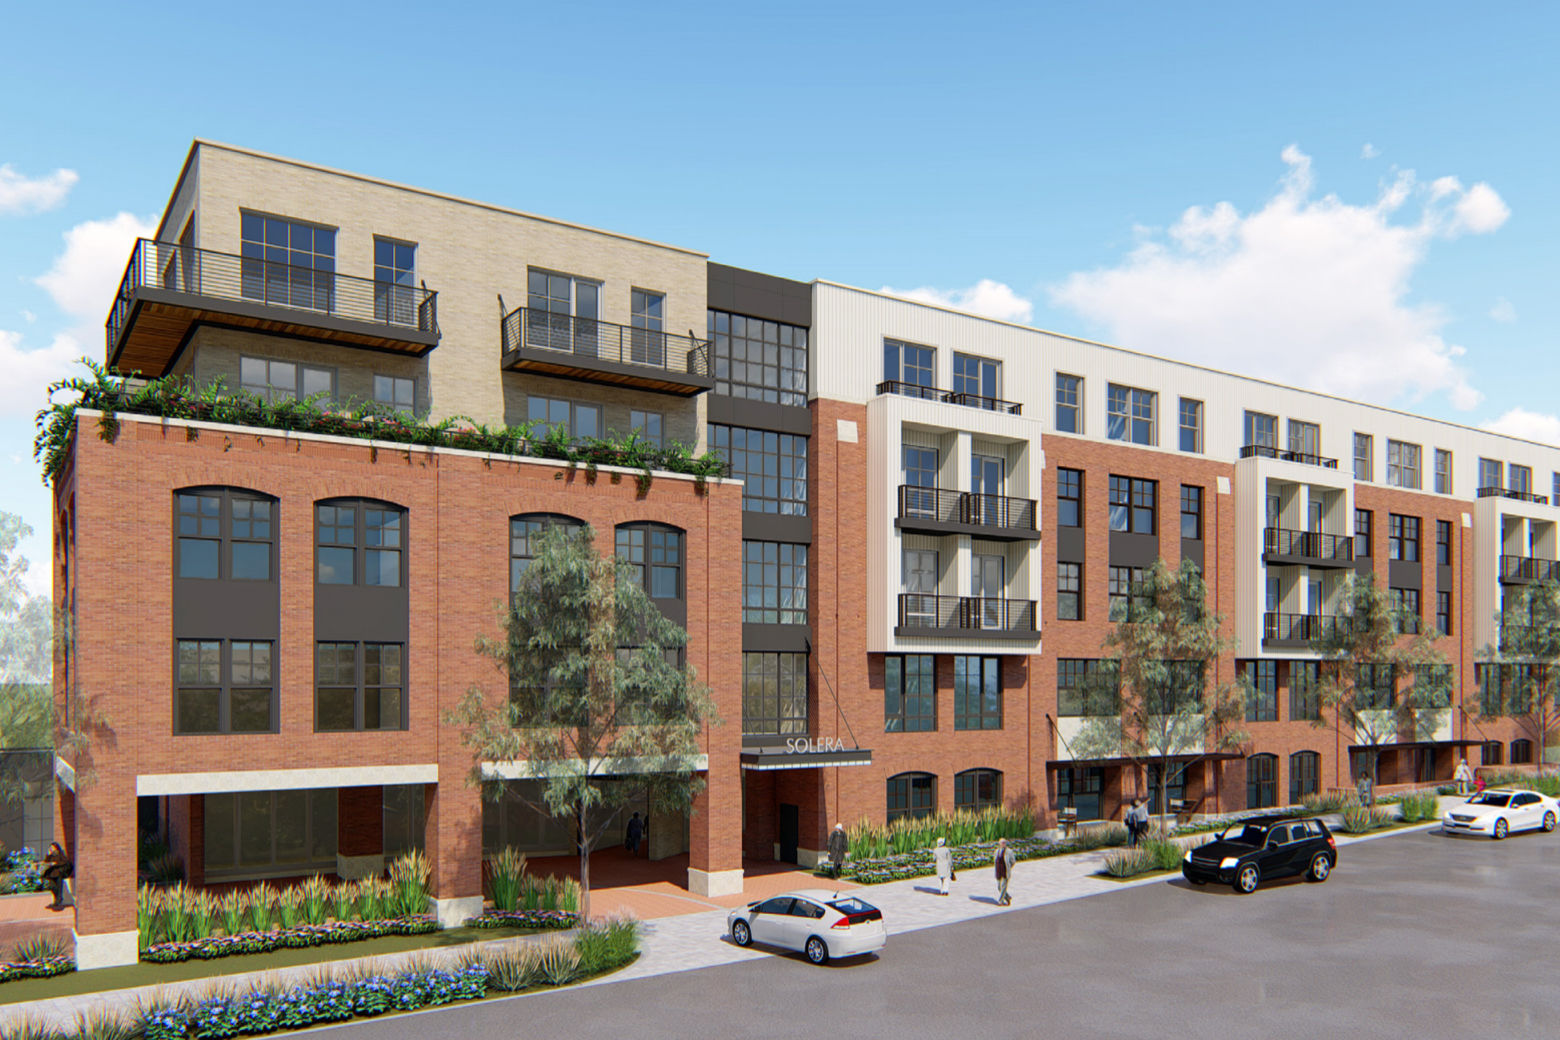 Renderings show what the Modena Reserve at Kengsington senior living community will look like. Here an view of the development from Metropolitan Avenue.